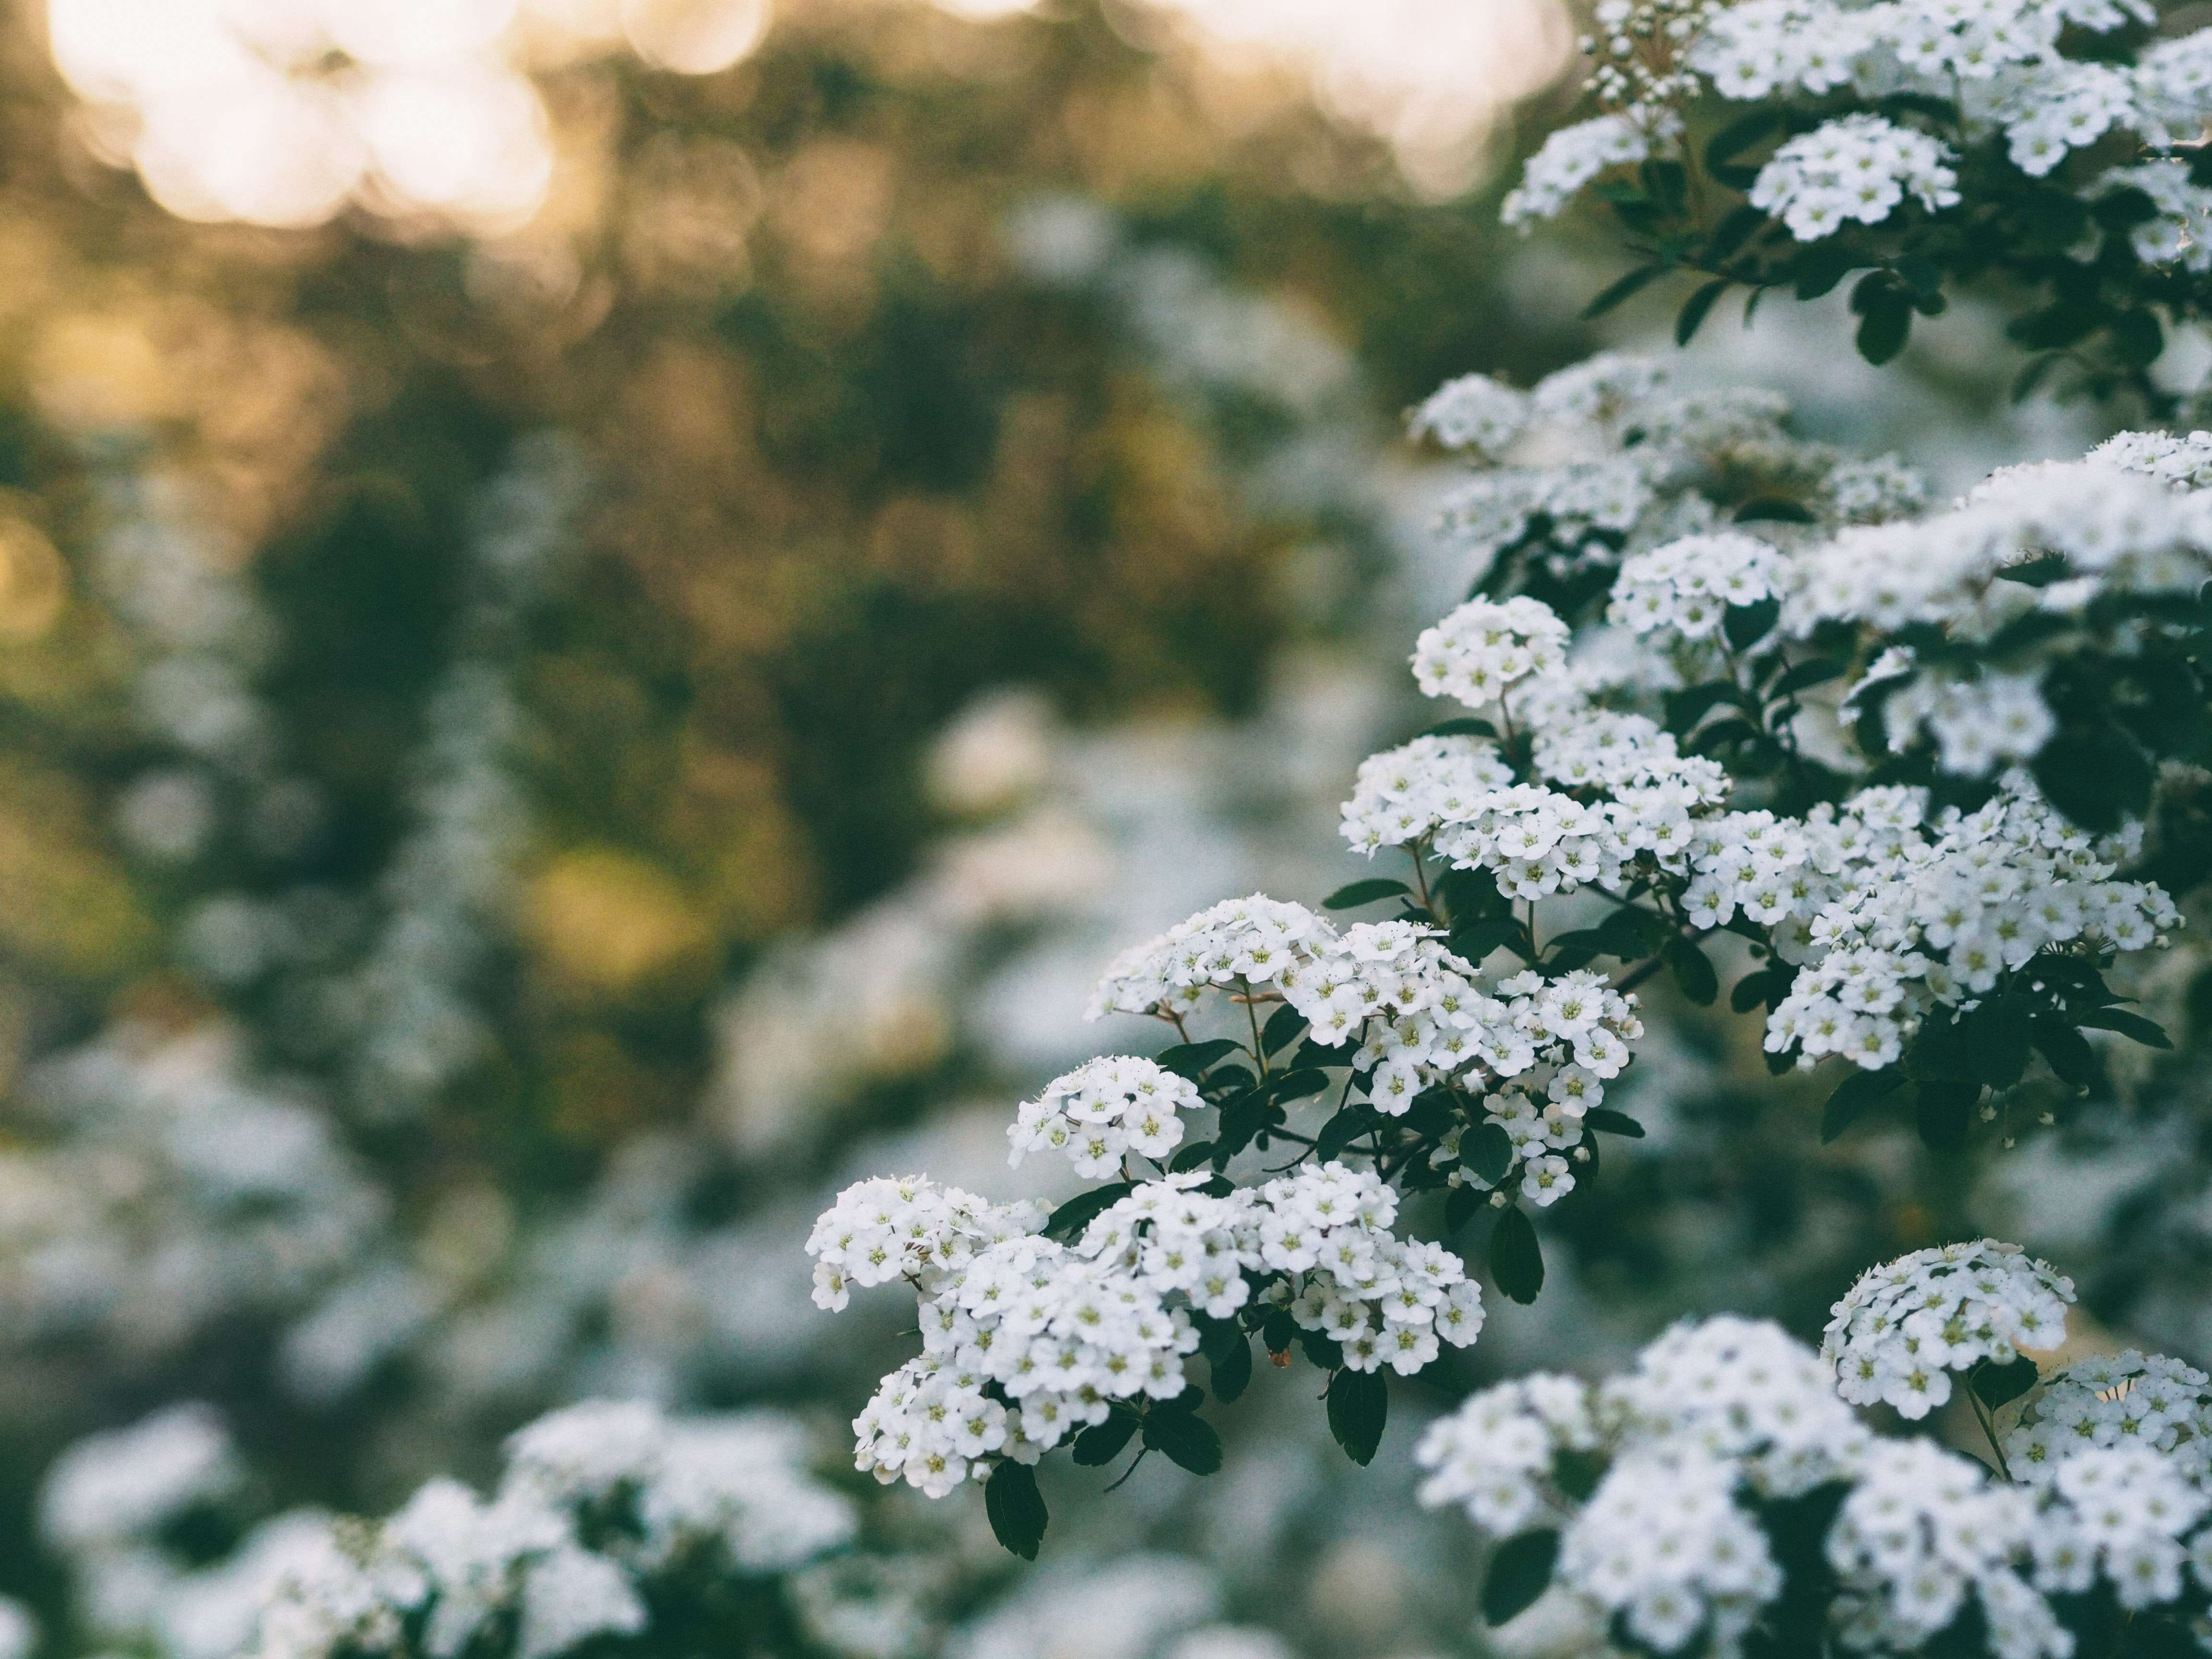 hallow focus photography of white flowers